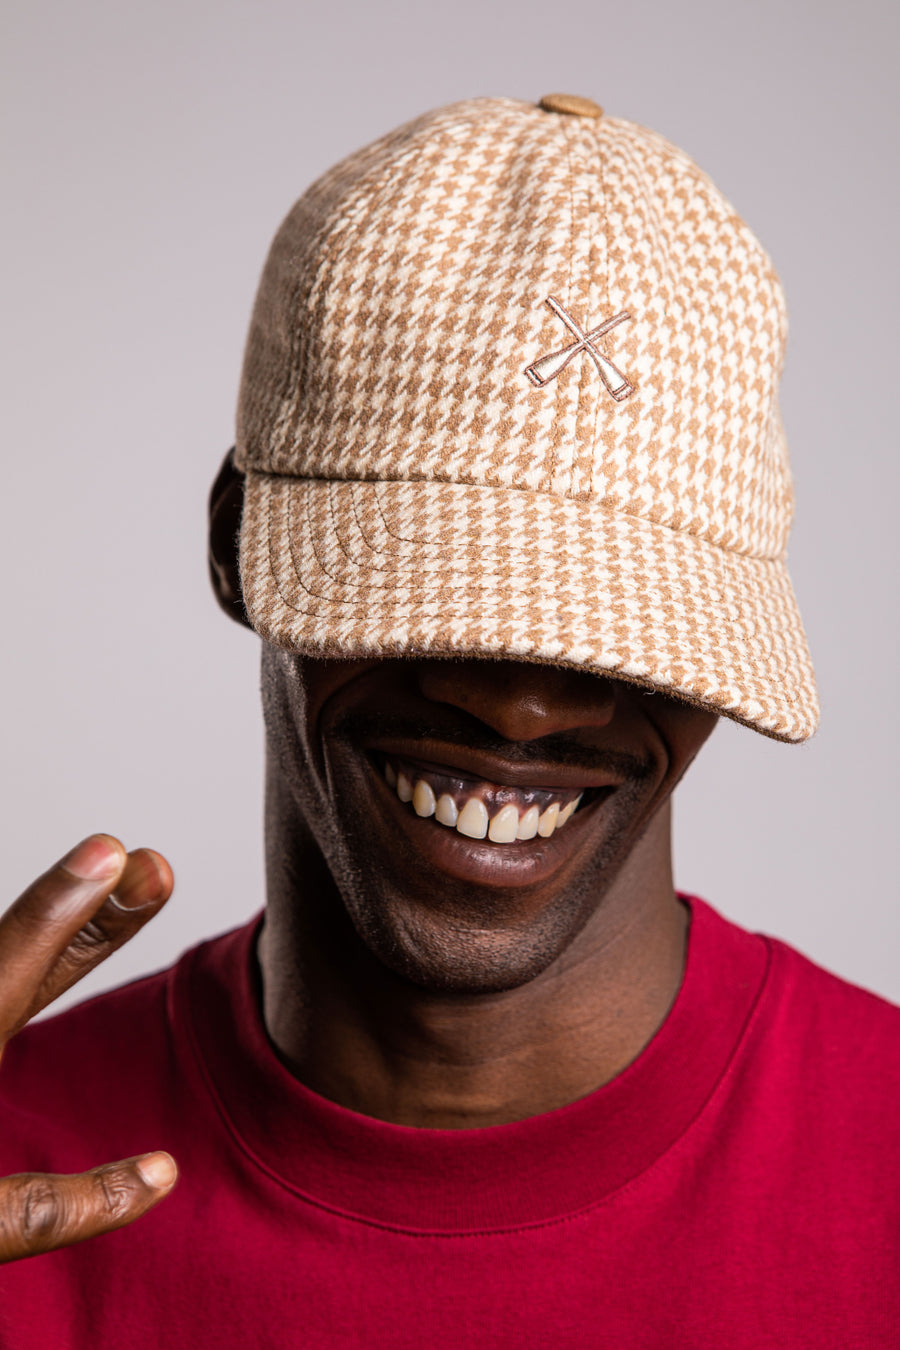 CITY CAP CURVED VISOR BEIGE HOUNDSTOOTH WOOL